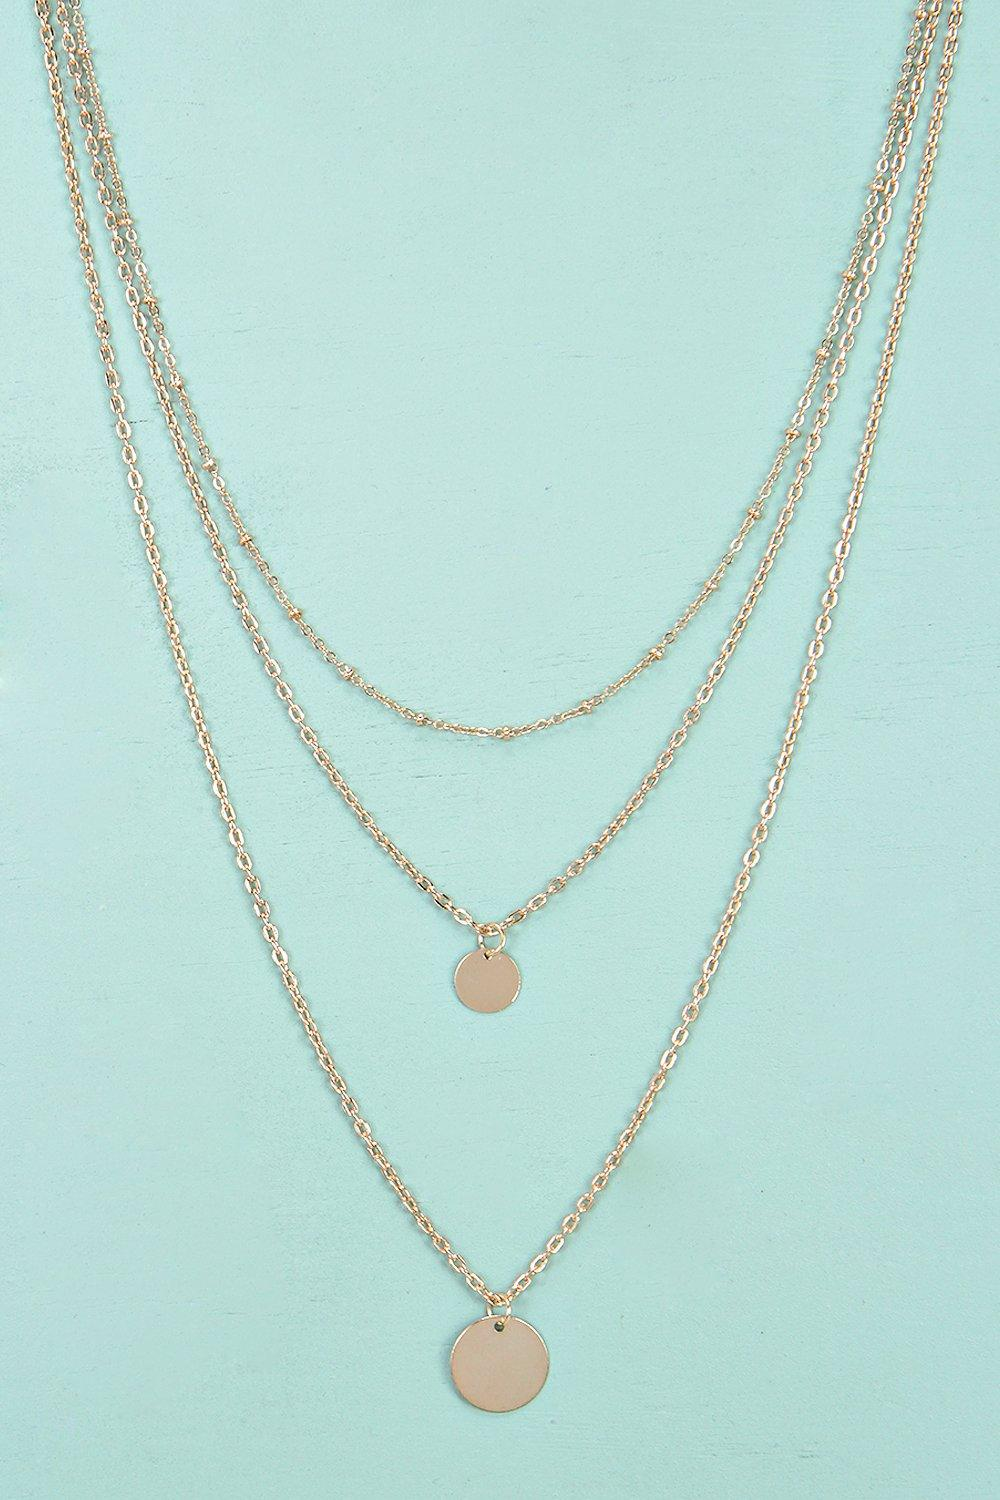 Heidi Double Coin Layered Necklace